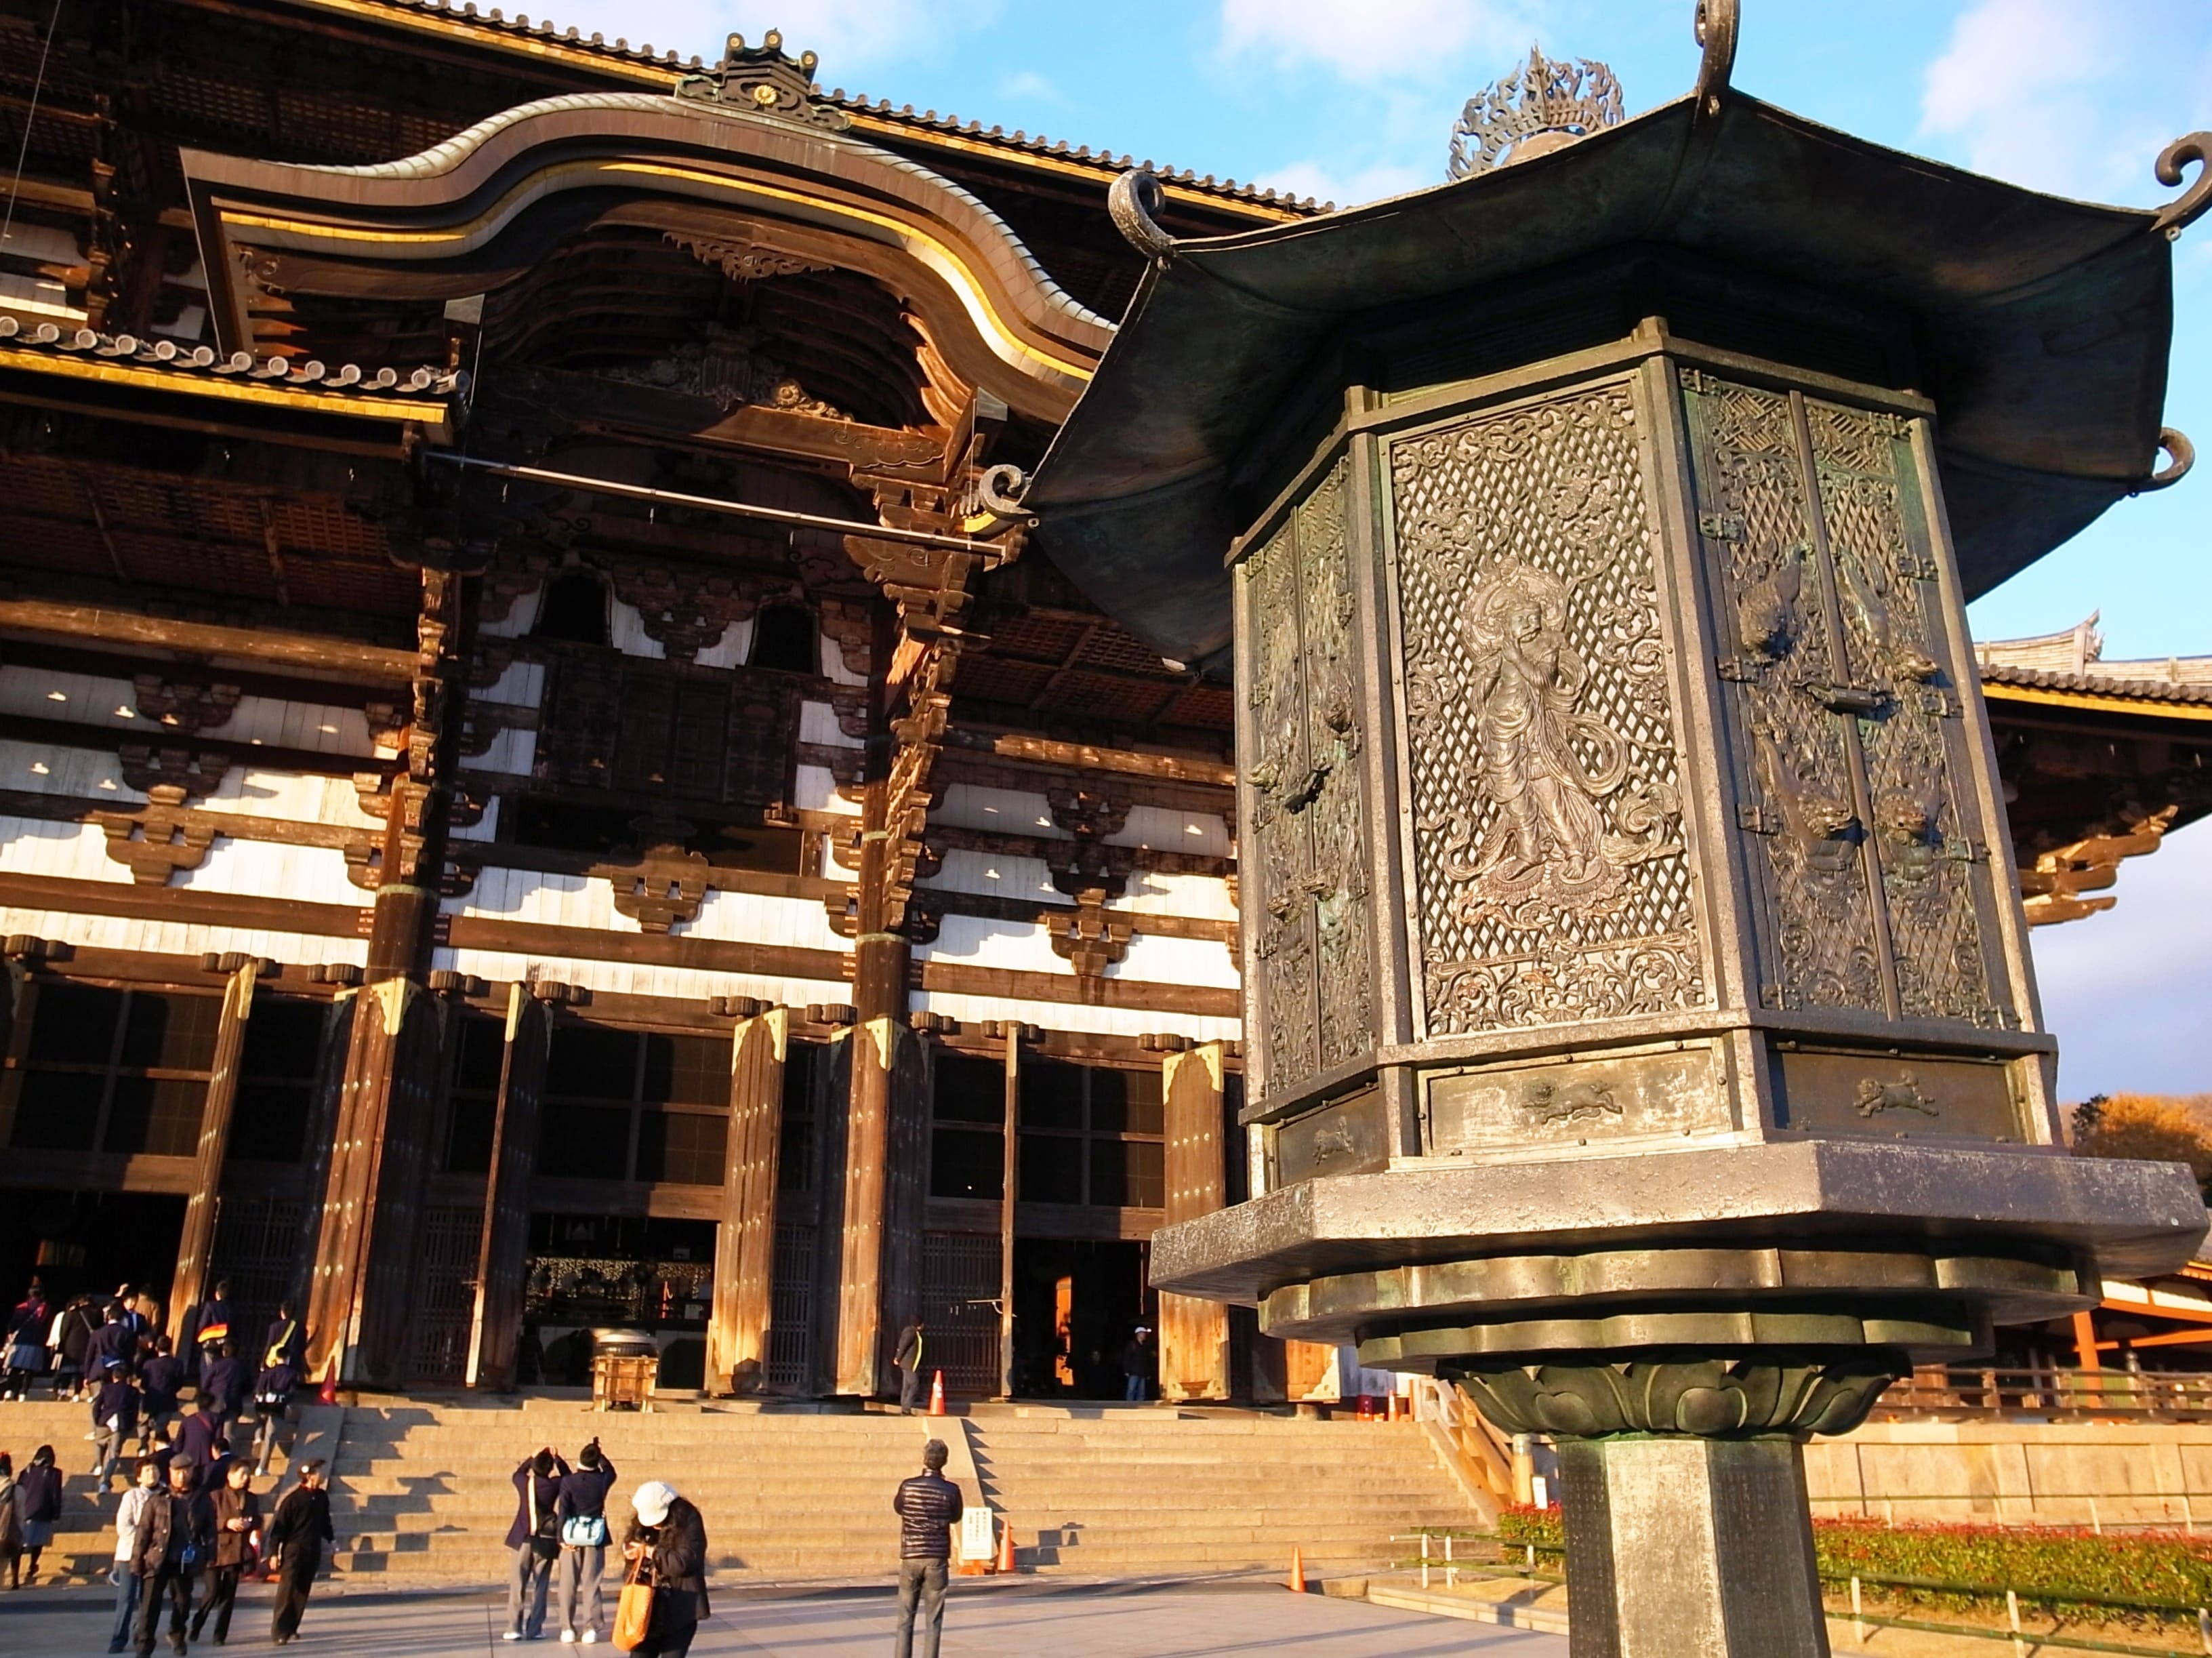 japanese art infused into the temple of todaiji Japanese architecture & temple structure leon z lee 8/13/2003 the todaiji great eastern temple is one of japan's most famous and historically significant temples and landmark of nara it.